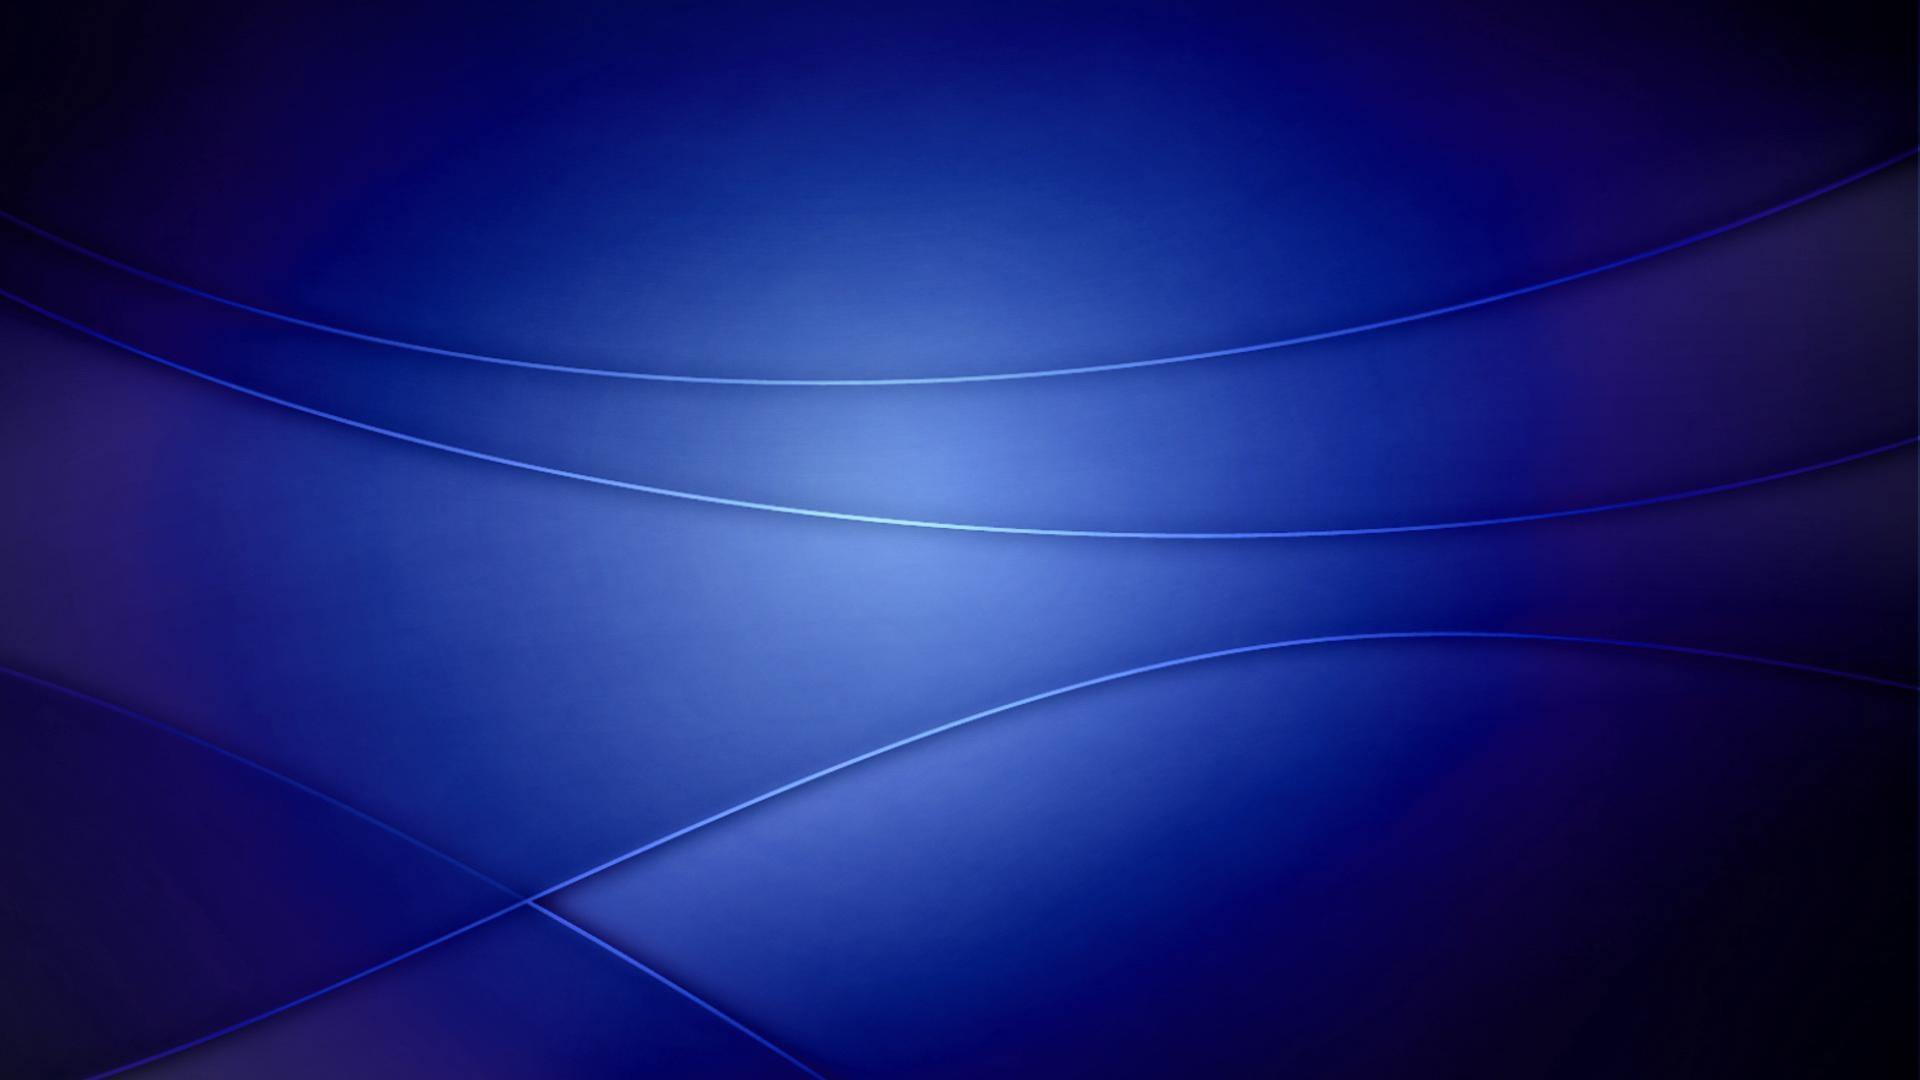 1920x1080 Royal Blue Wallpaper